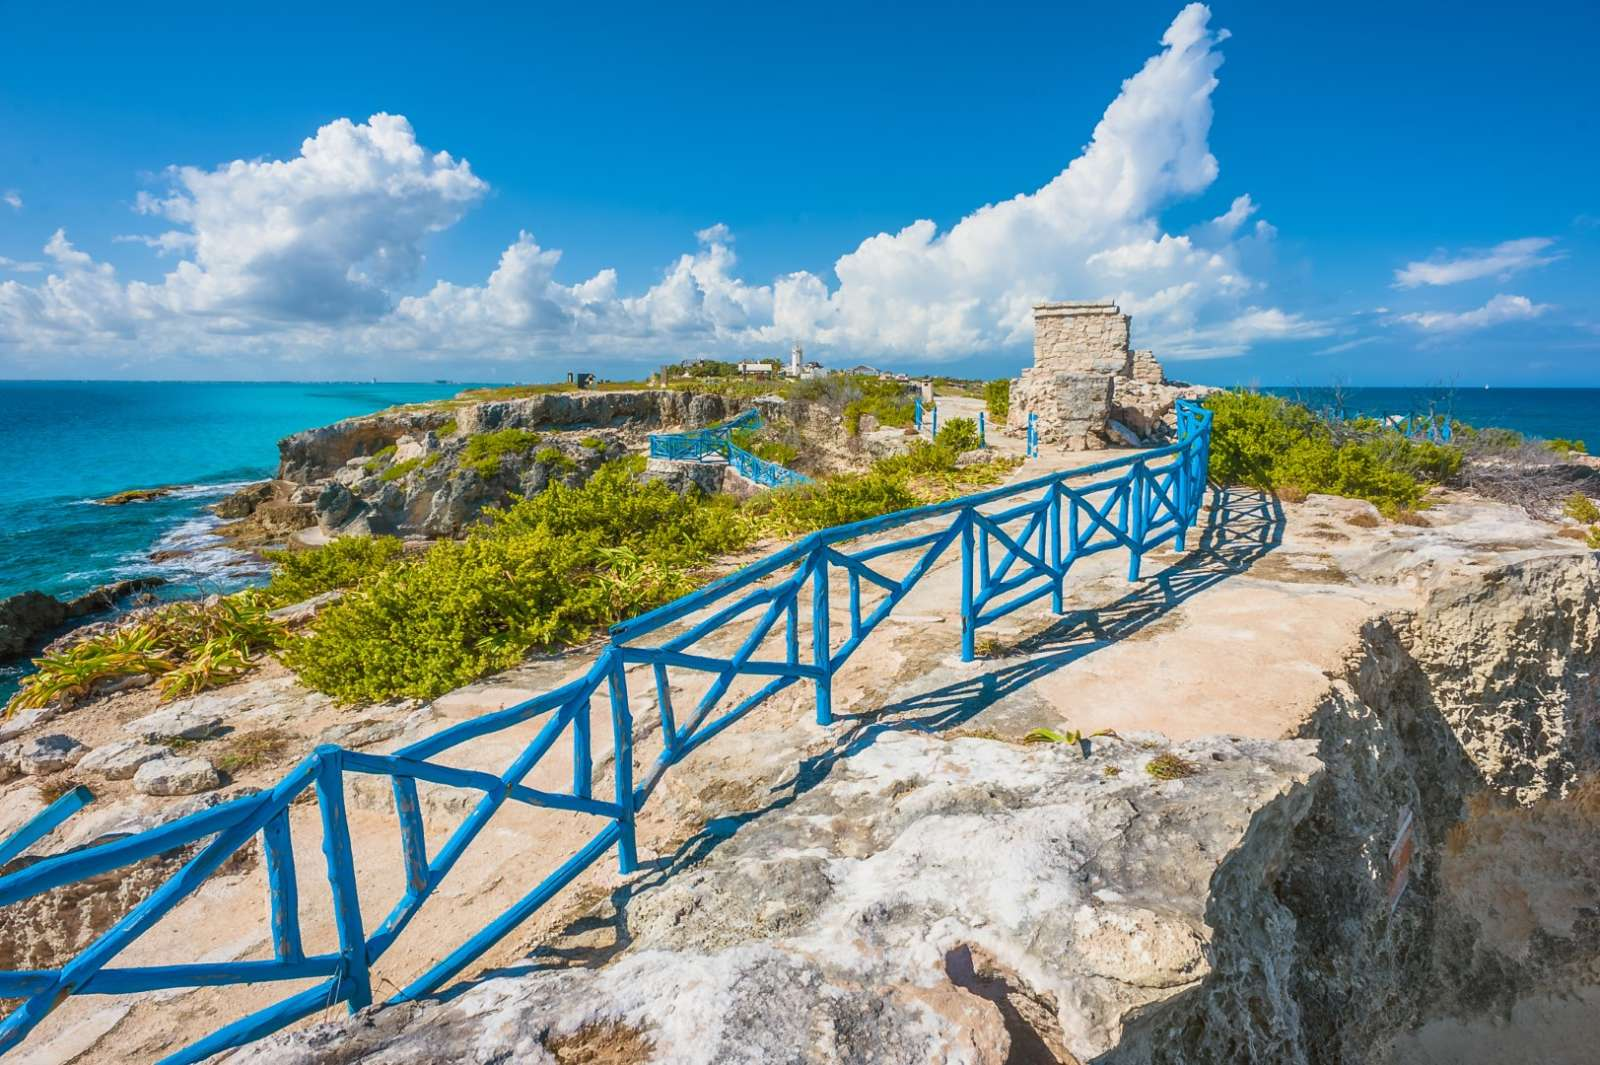 Southern tip of Isla Mujeres Mexico